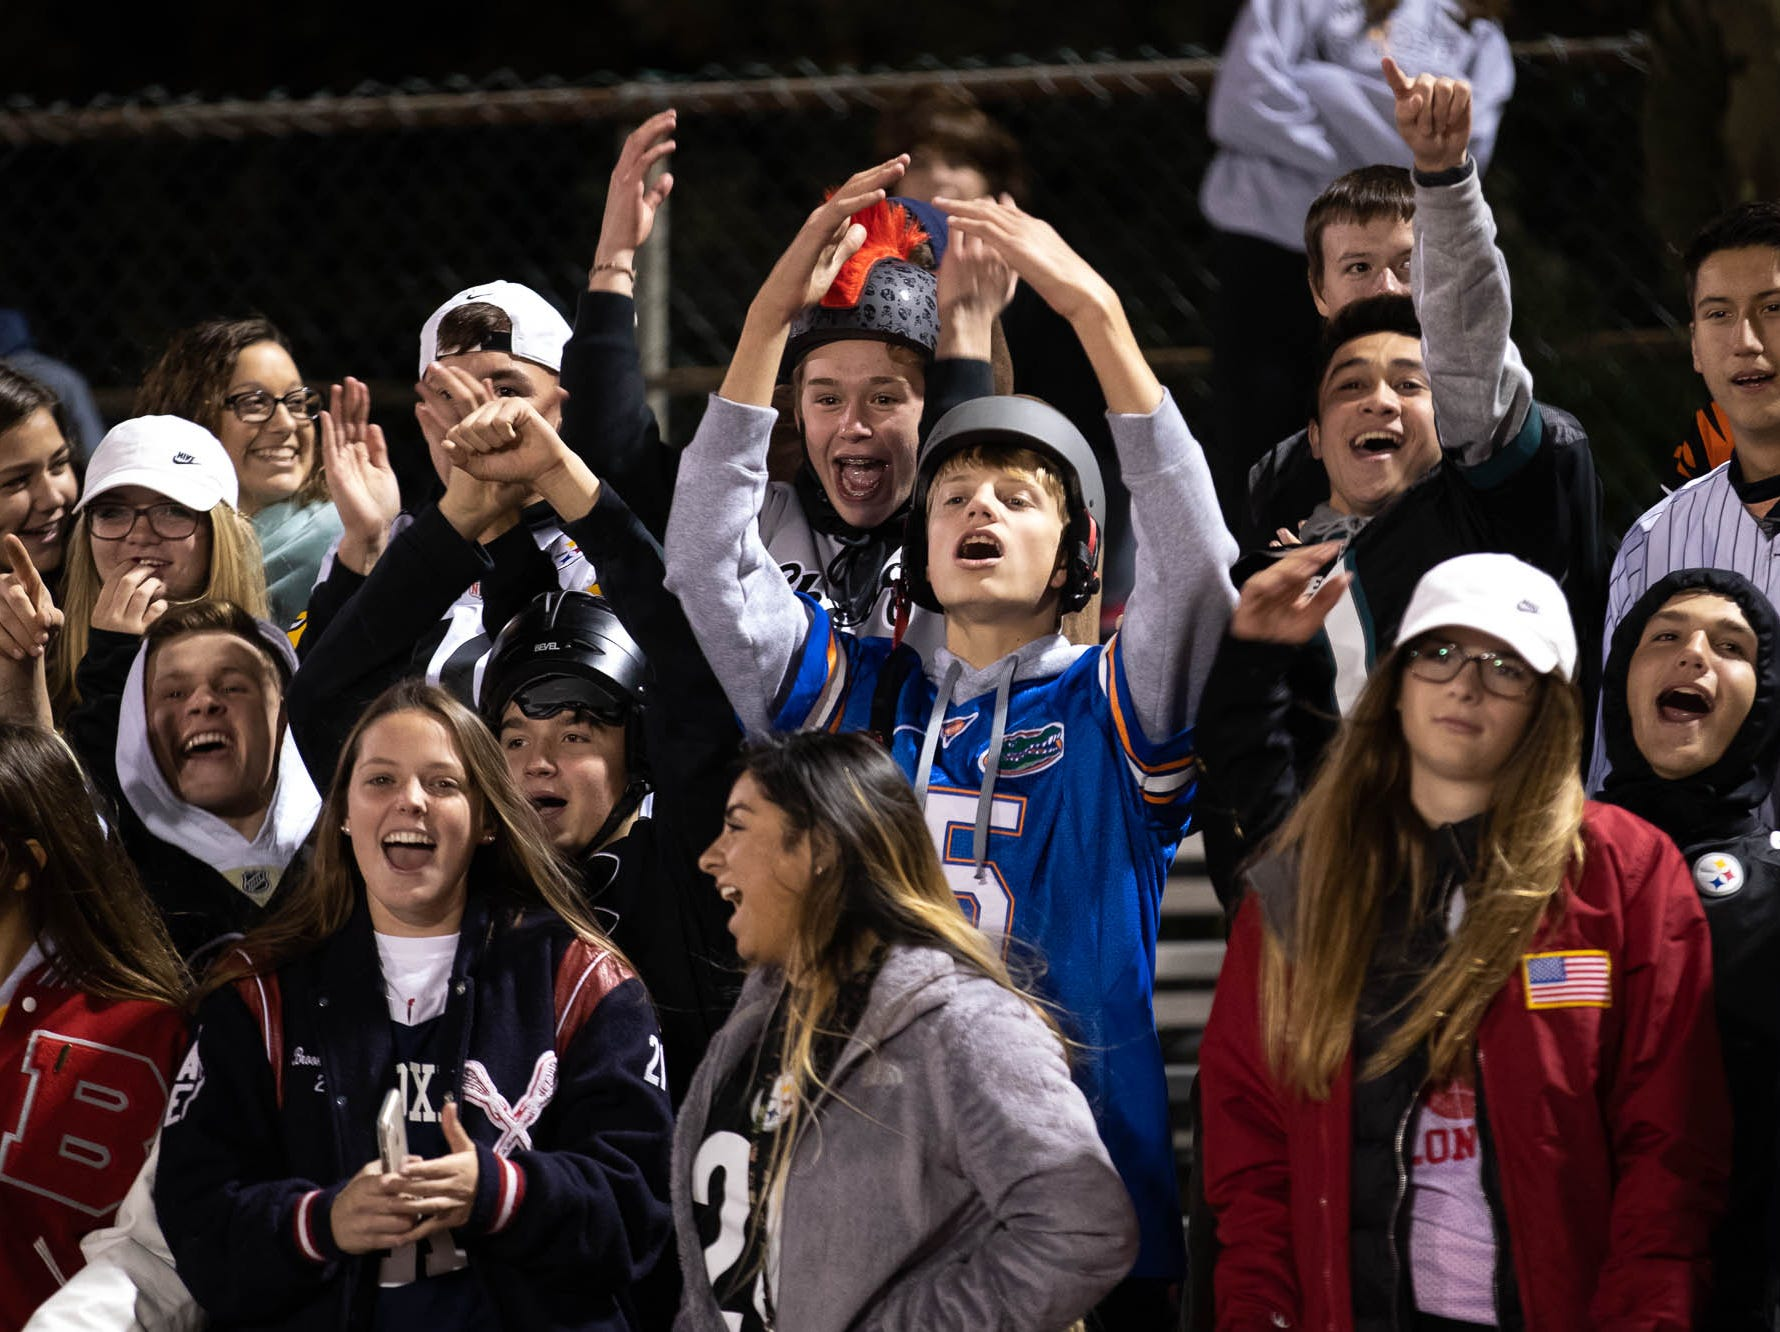 The New Oxford student section cheers during the second half of a football game between South Western and New Oxford, Friday, Oct. 19, 2018, in Penn Township. The New Oxford Colonials beat the South Western Mustangs 21-14.